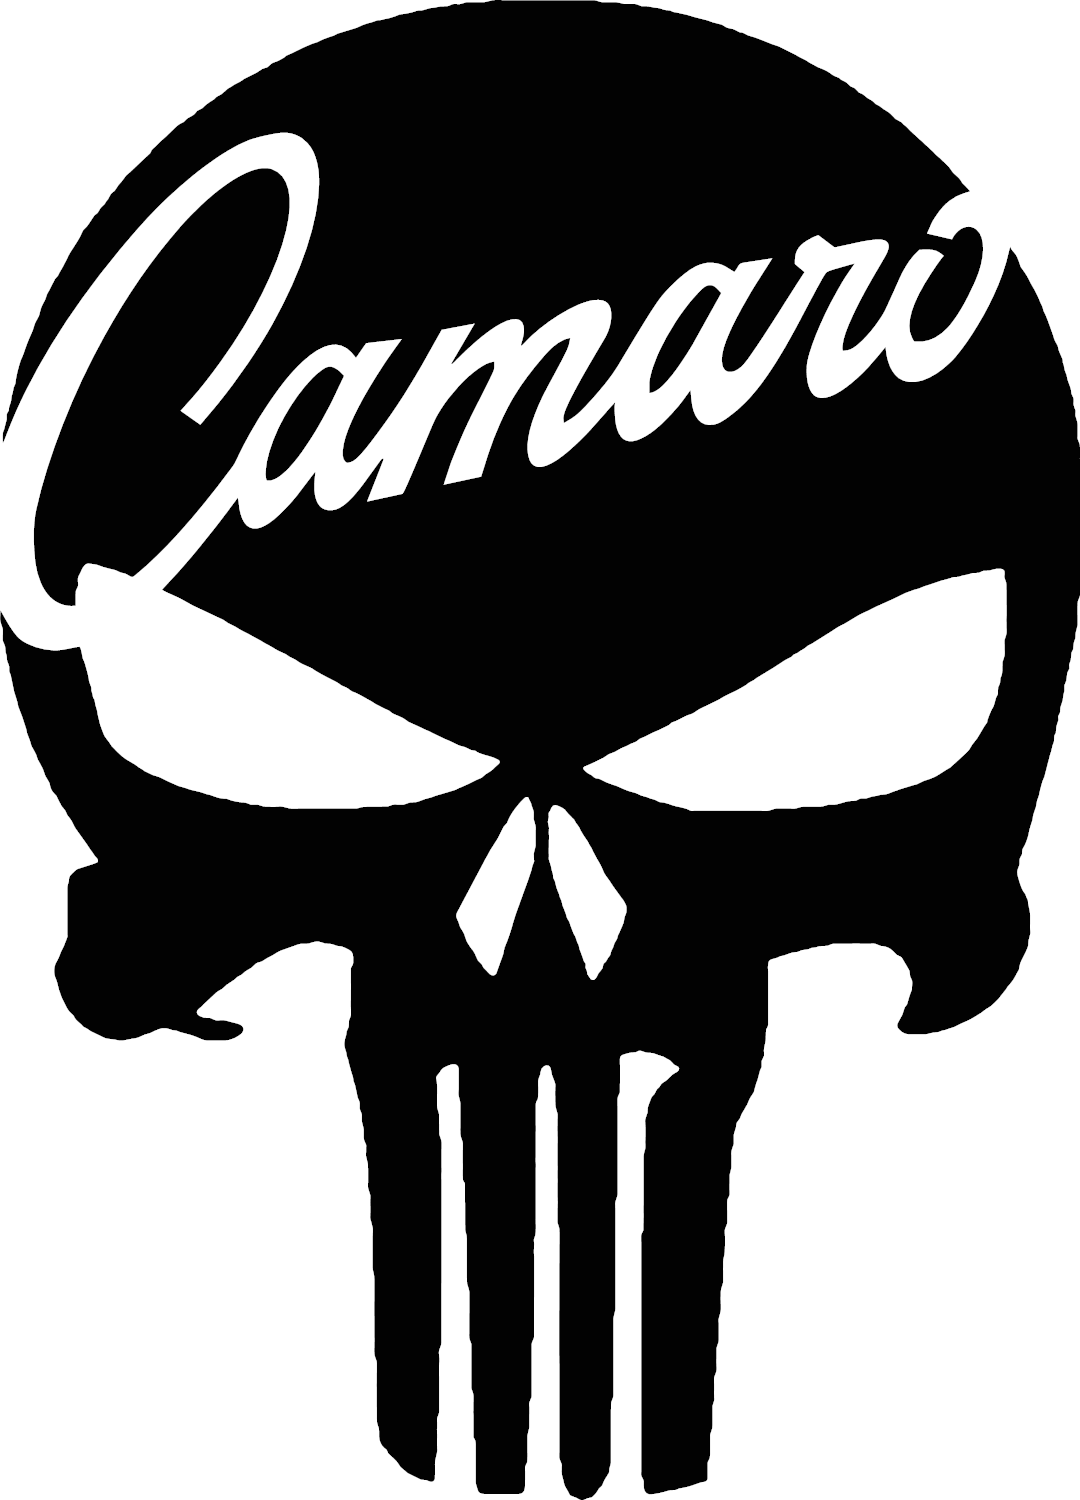 Chevrolet chevy camaro punisher skull vinyl decal 3 sizes 12 colors camaro ss 4 4 of 11